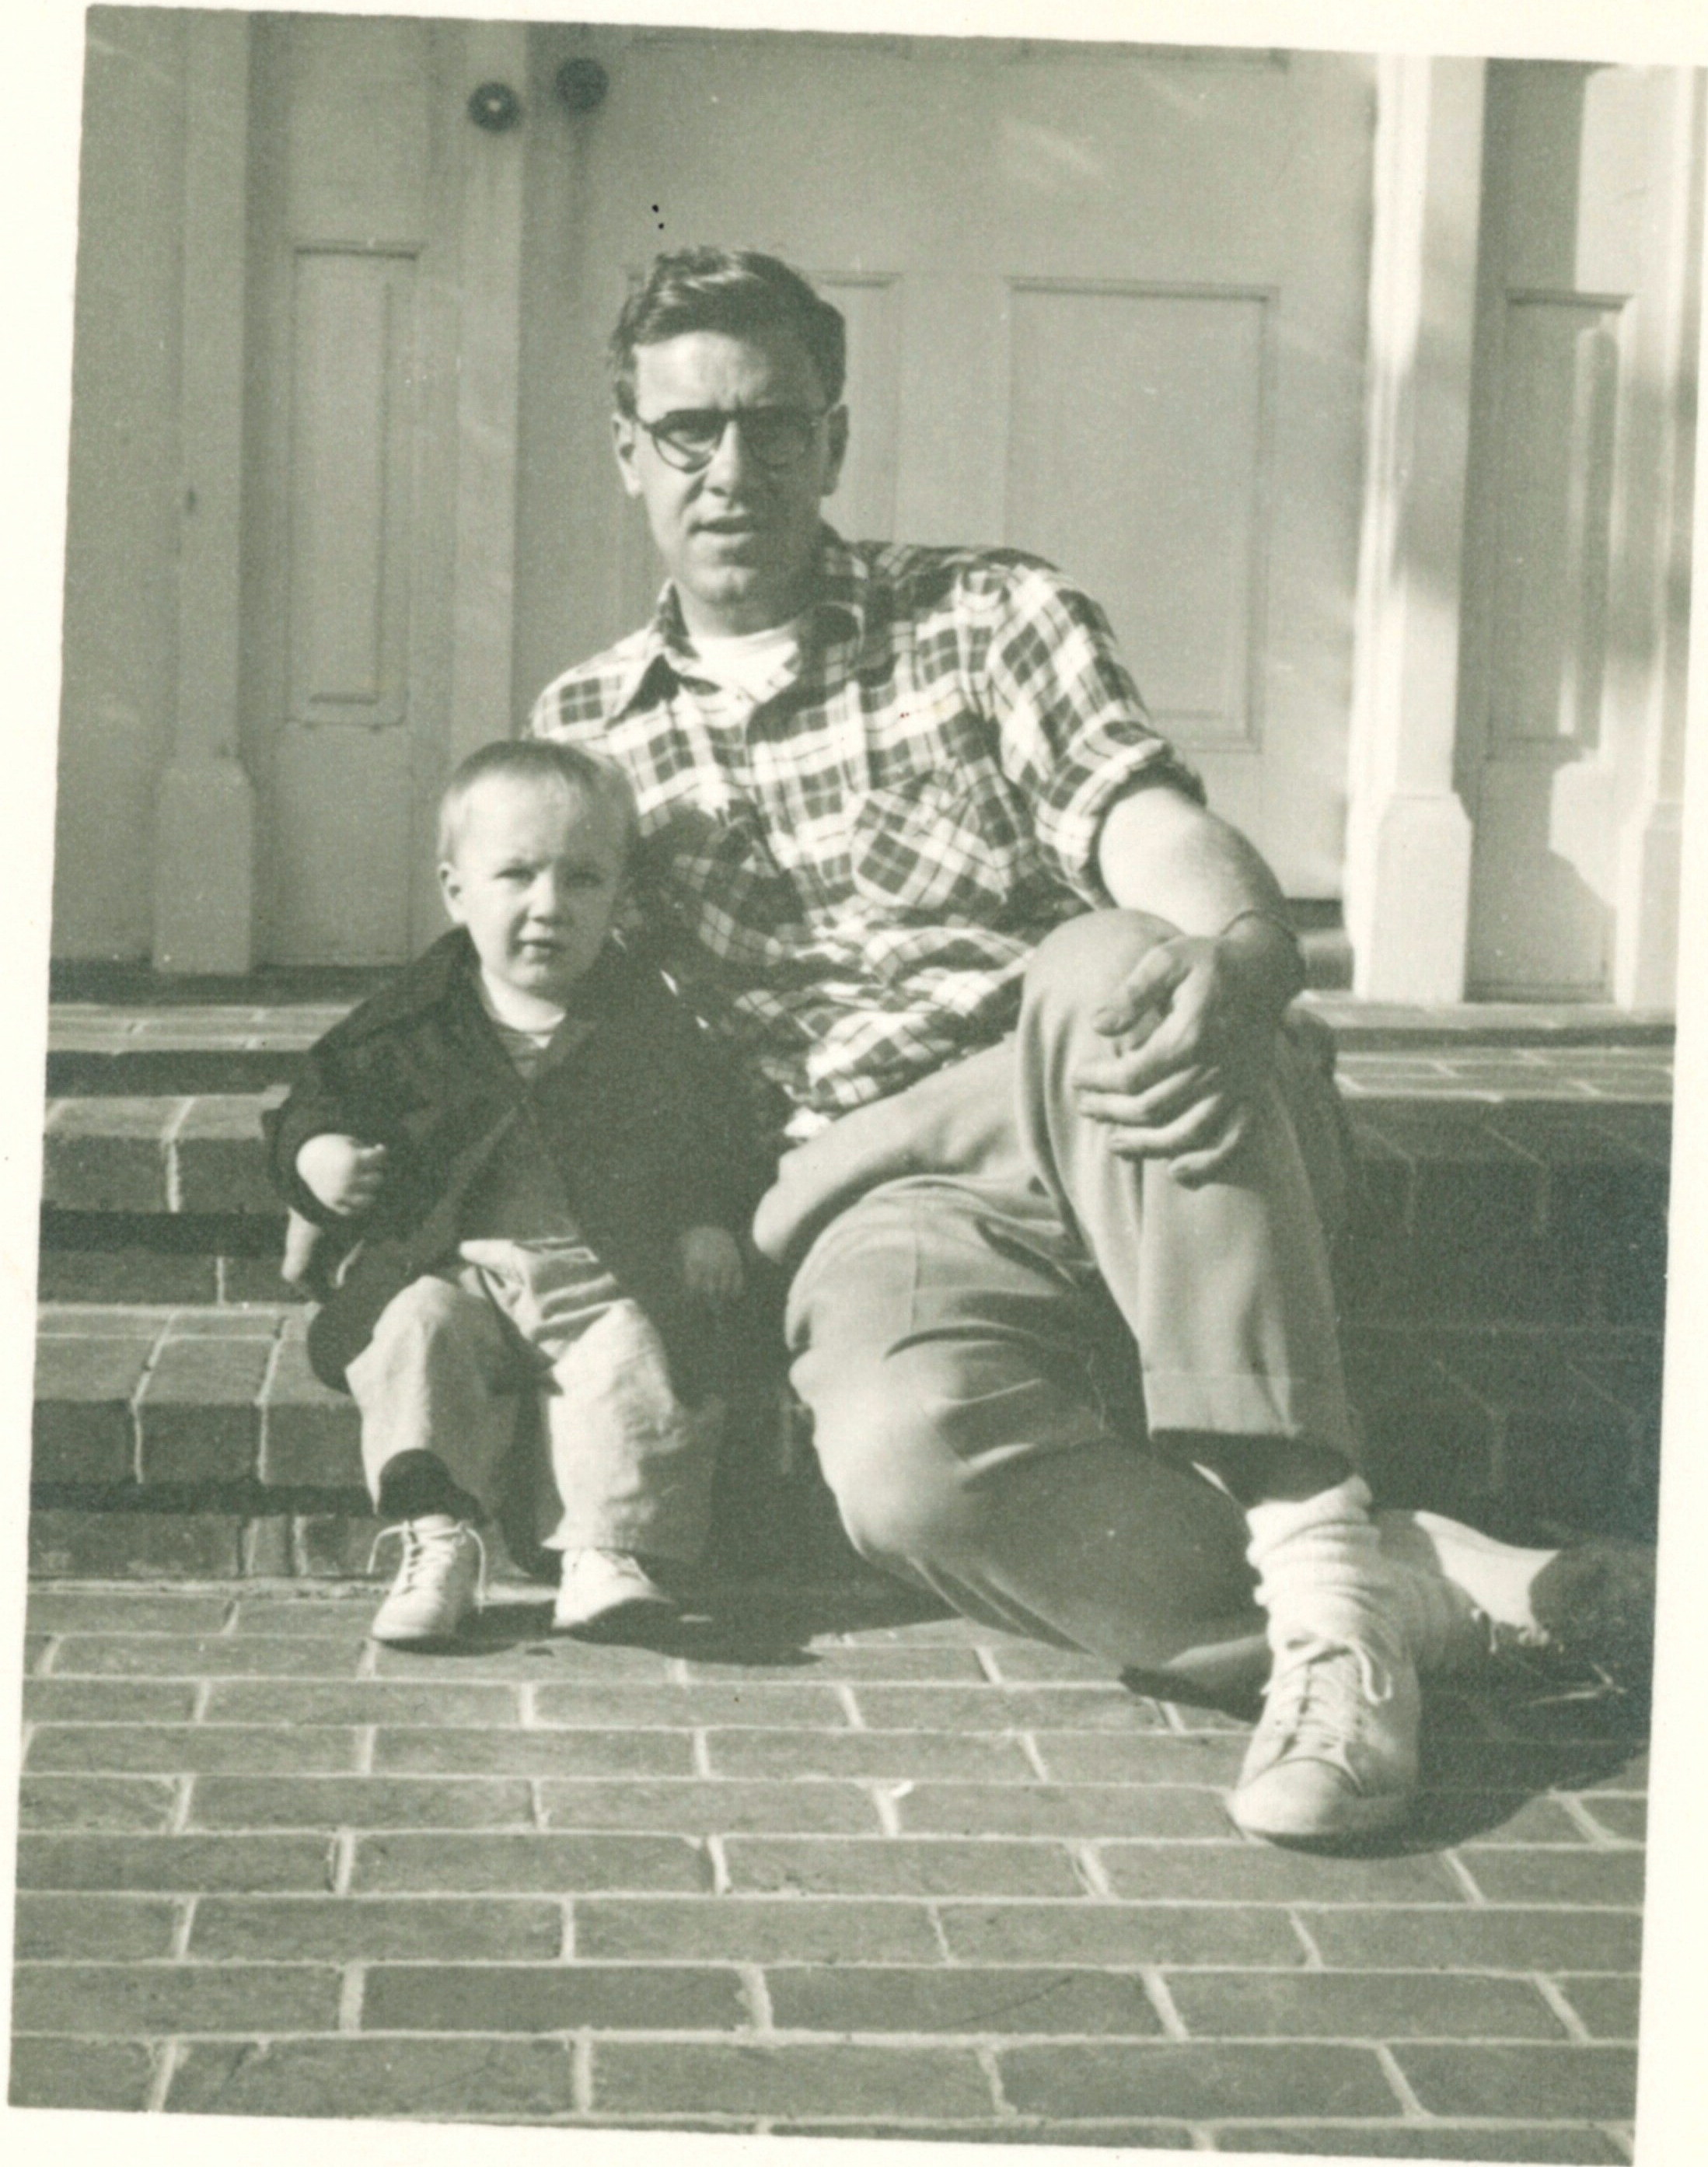 With my father at 3405 Via Palomino in 1950